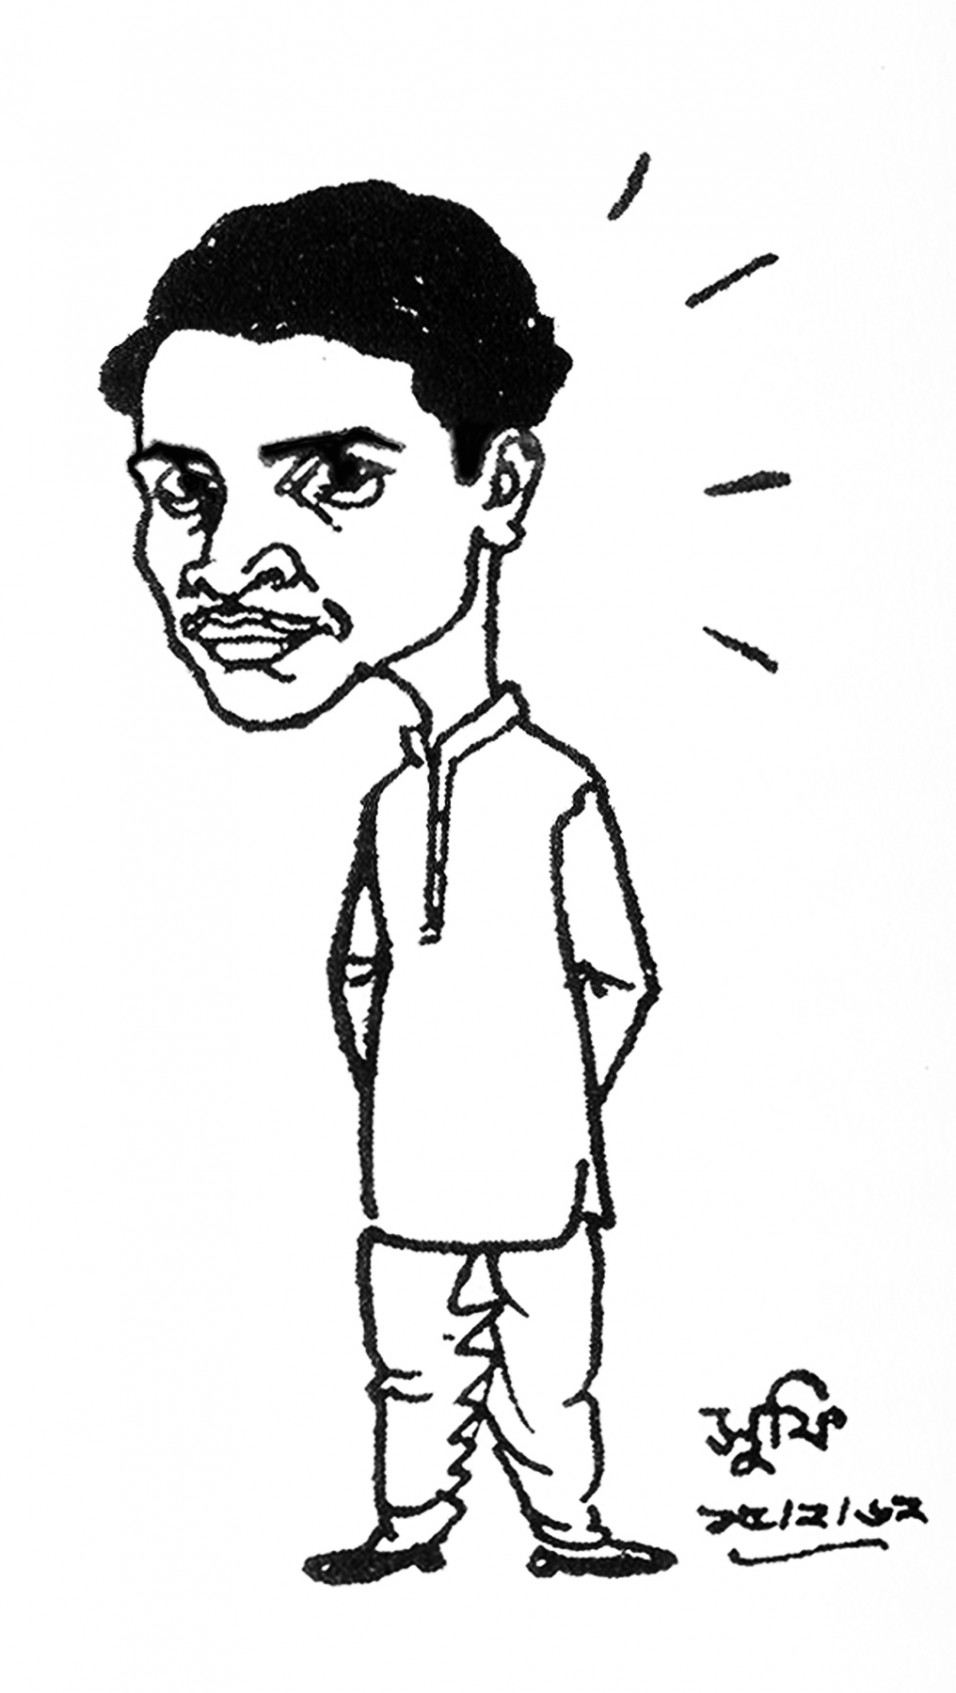 Narendra nath er self portrait